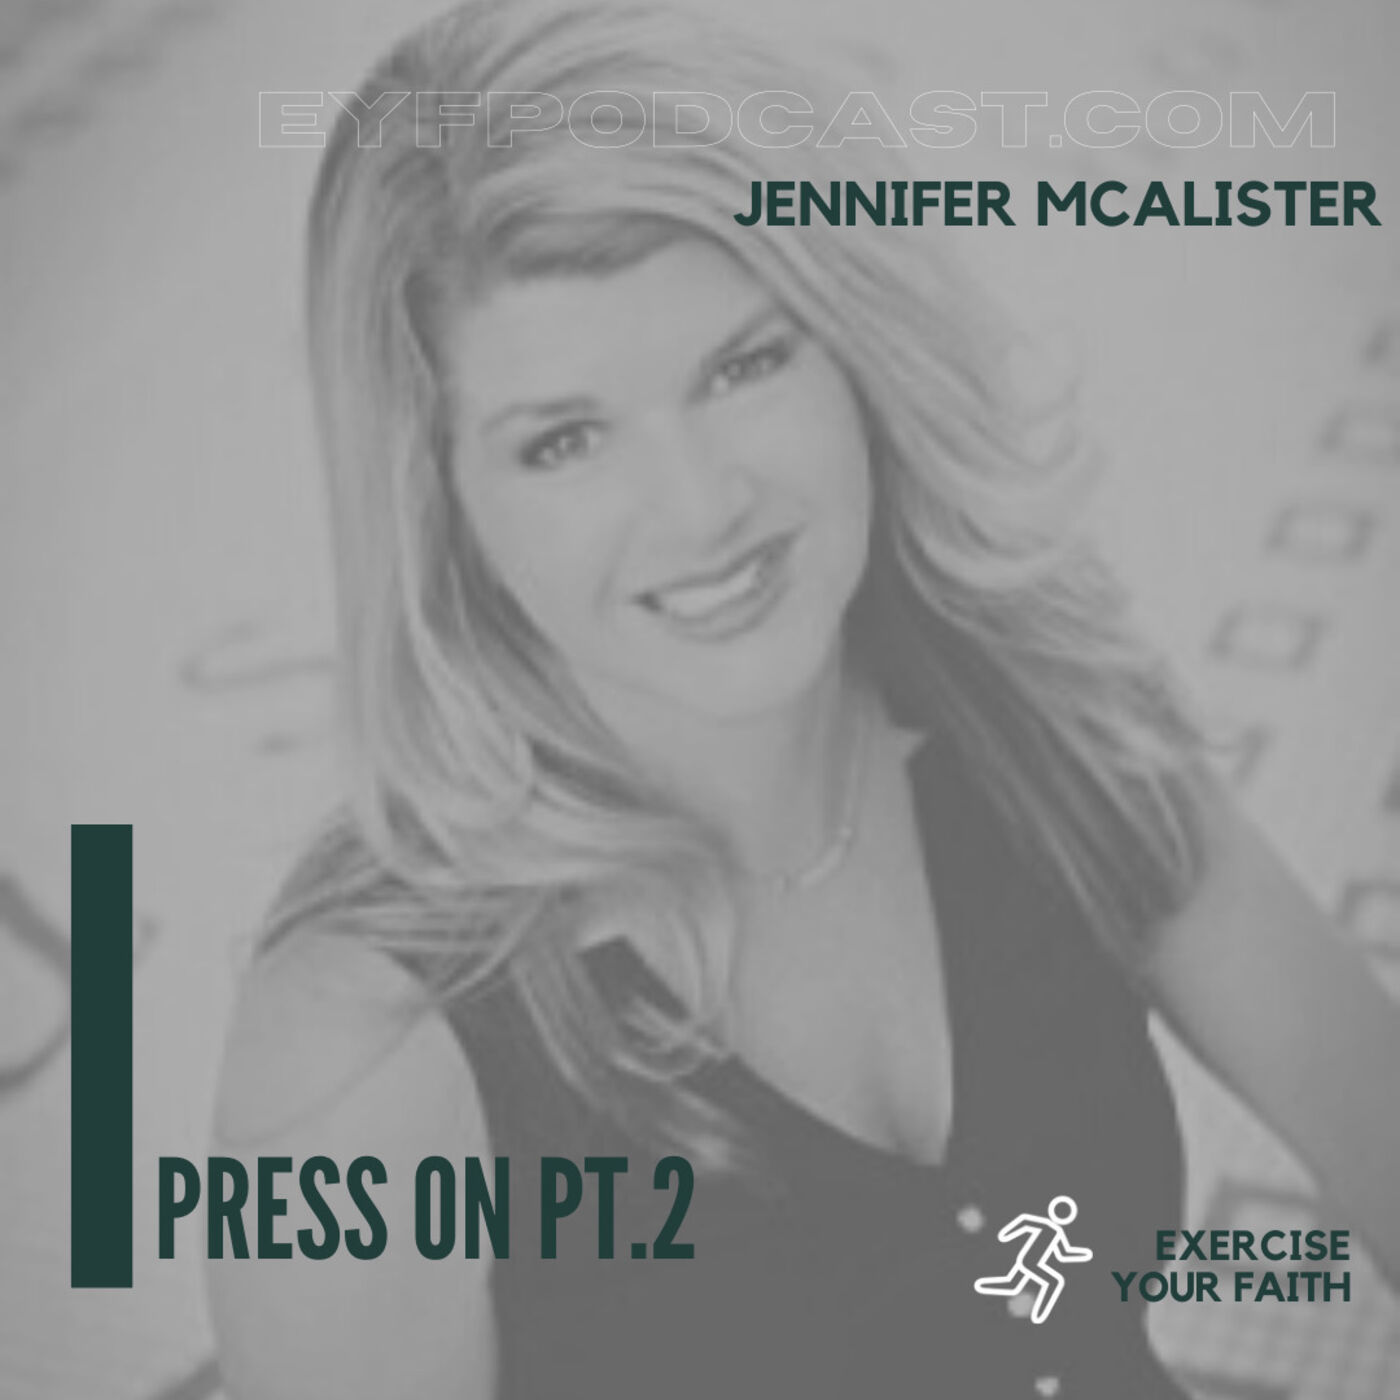 EYFPodcast- Exercise your faith by doing it scared. part two of our interview with endurance athlete and author Jennifer McAlister